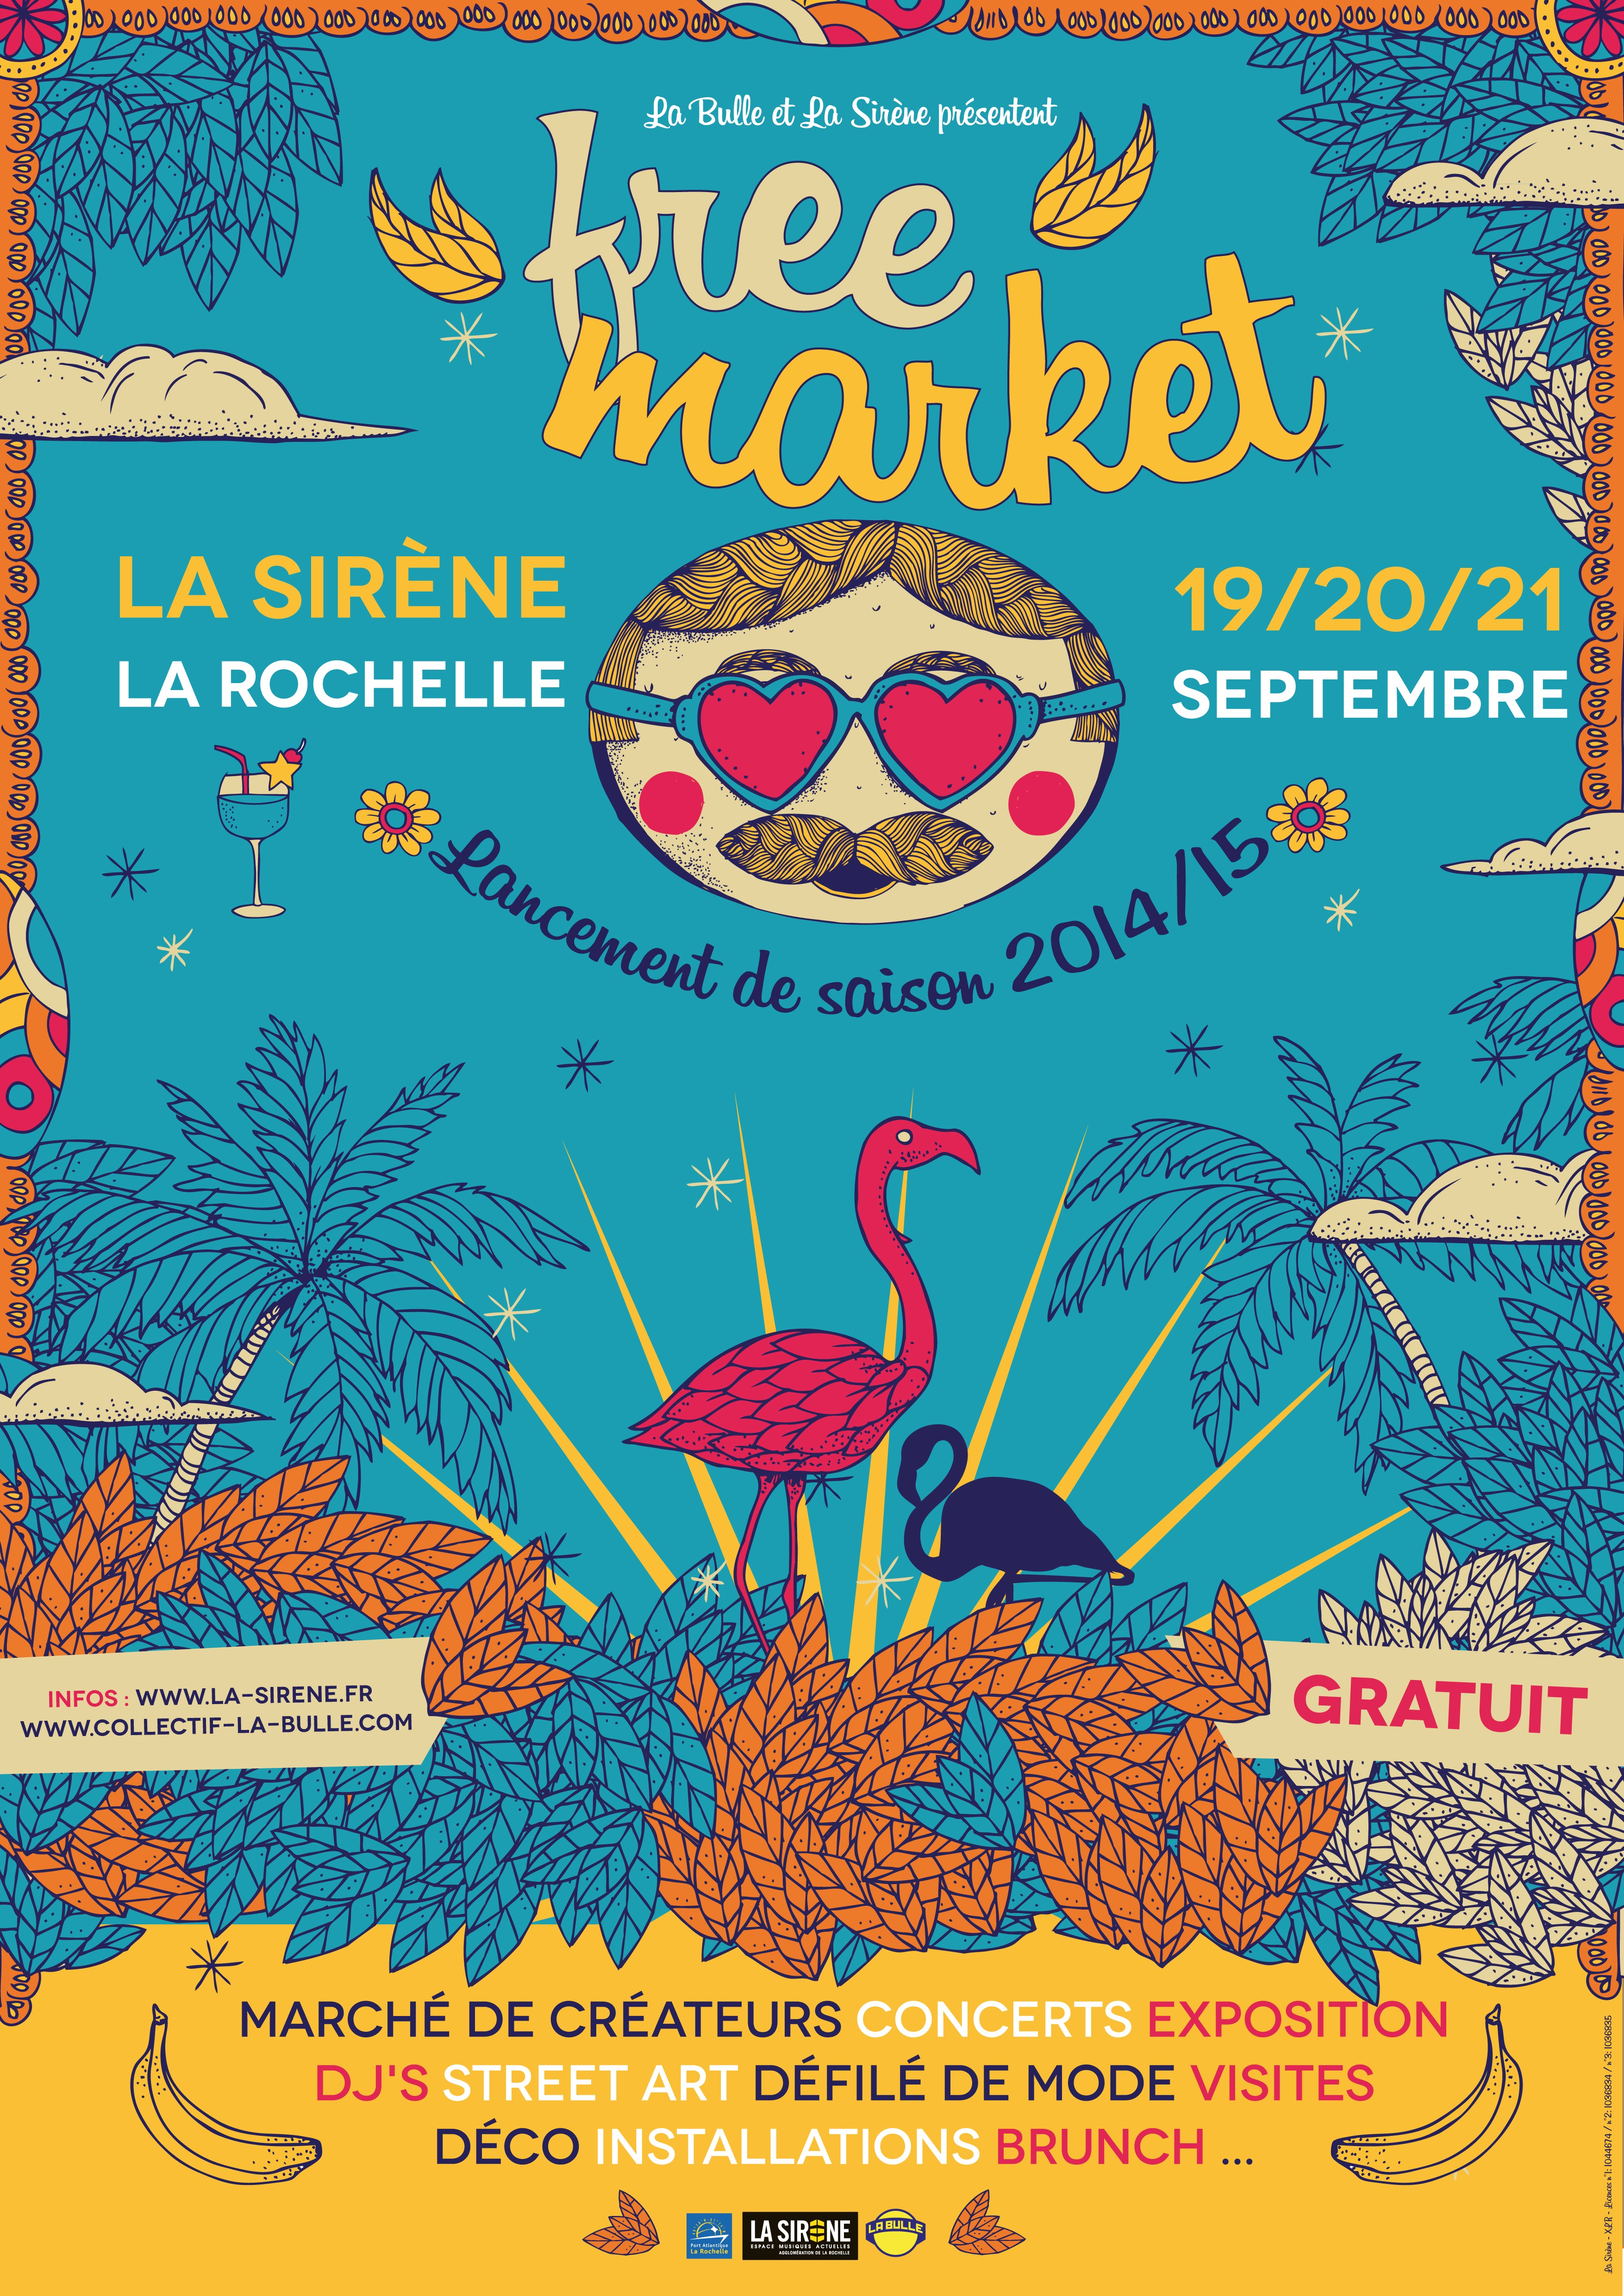 Affiche expo Free Market